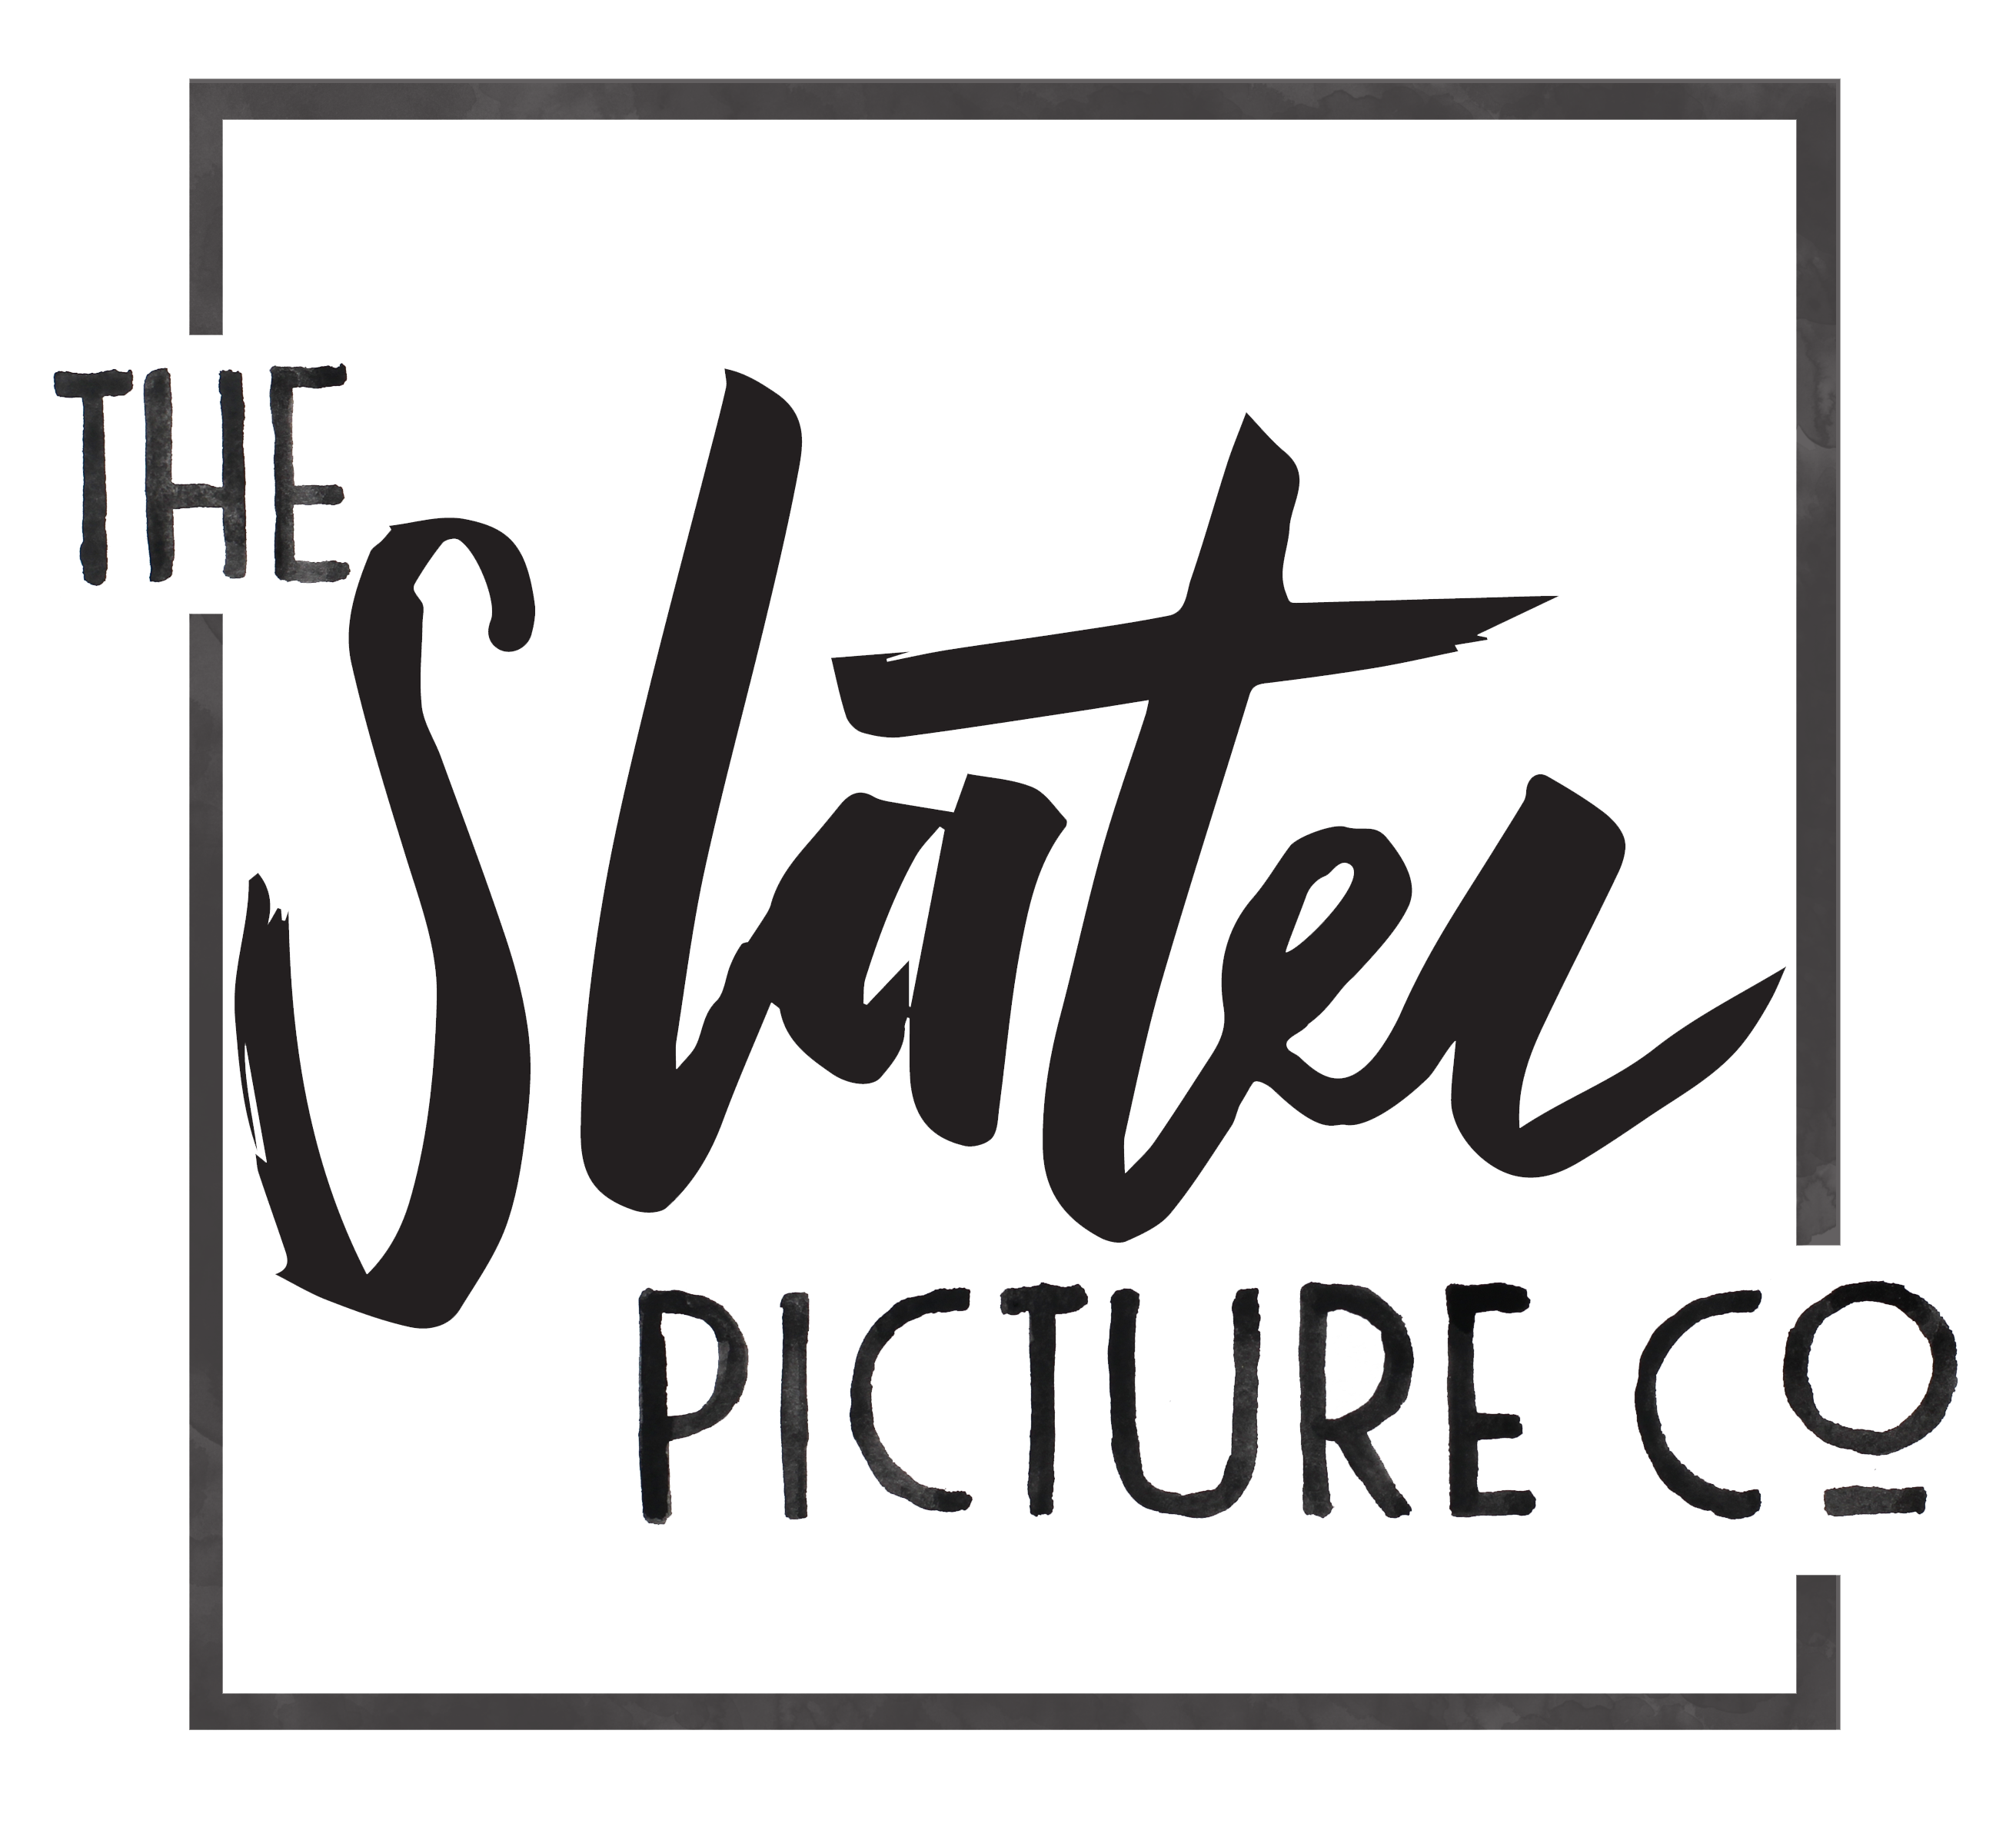 svg transparent library The slater picture co. Use kind words clipart